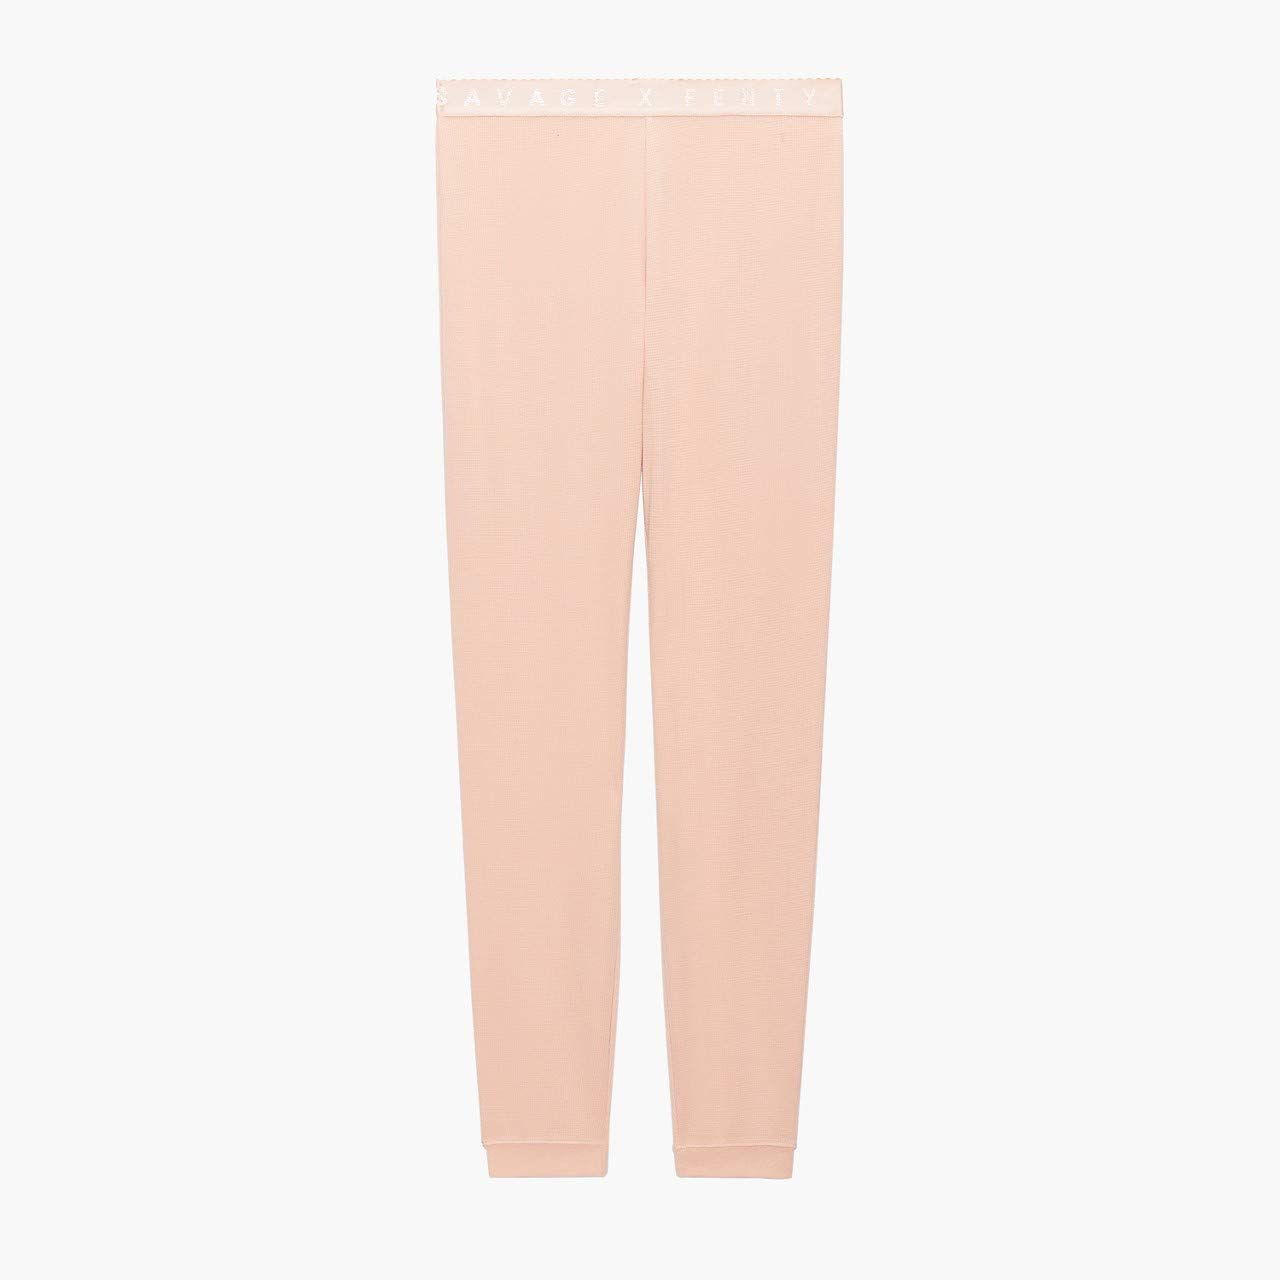 Savage X Fenty Women's Reg Savage X Thermal Pant, Naked Pink Rose, X-Large by Savage X Fenty